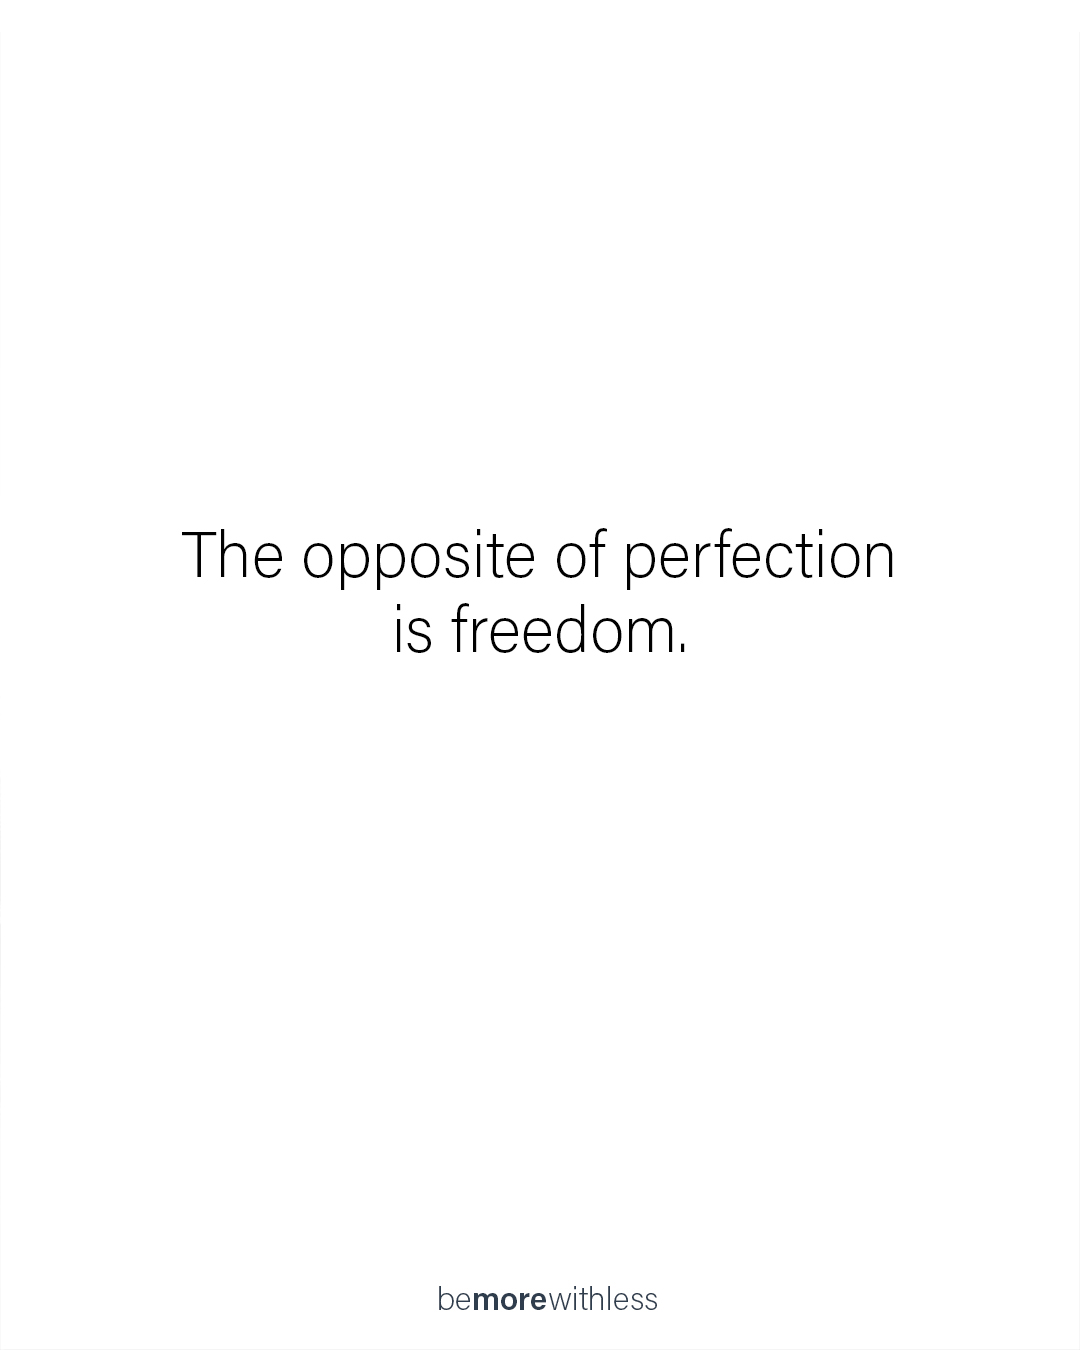 Choose freedom over perfection